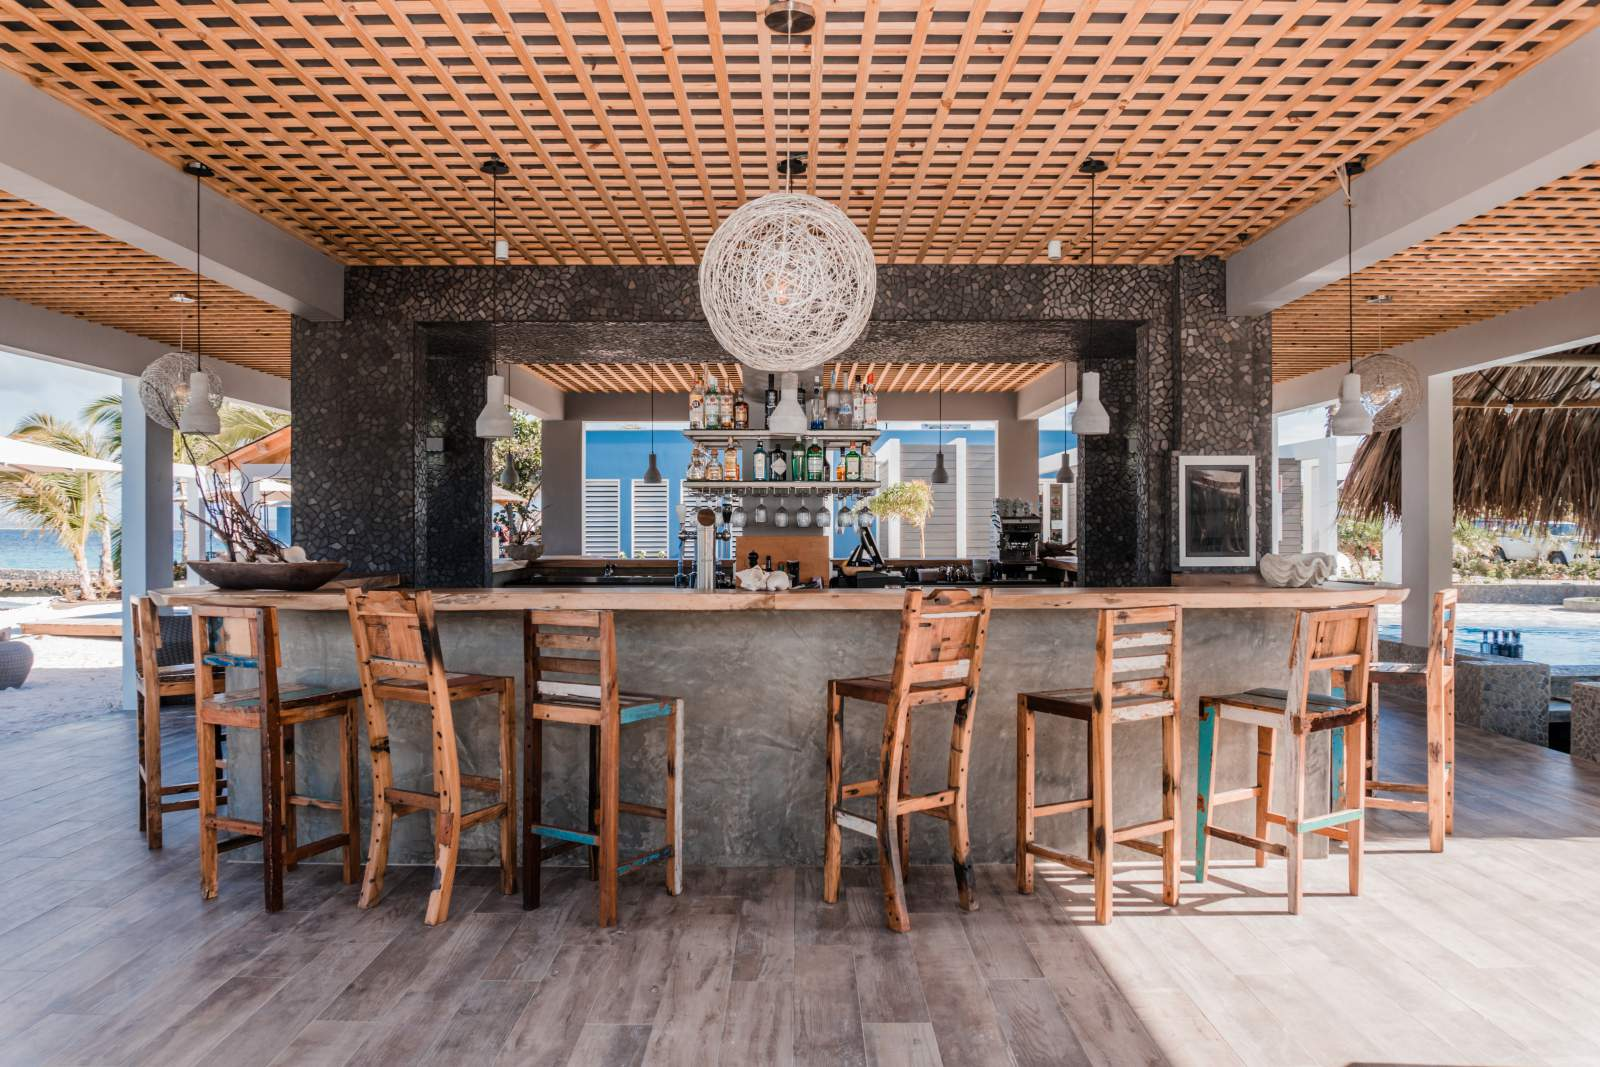 caribbean furniture. Adding The Caribbean Vibe To Bar Of Brass Boer By Placing Furniture Colored, Reclaimed Teak Wood.